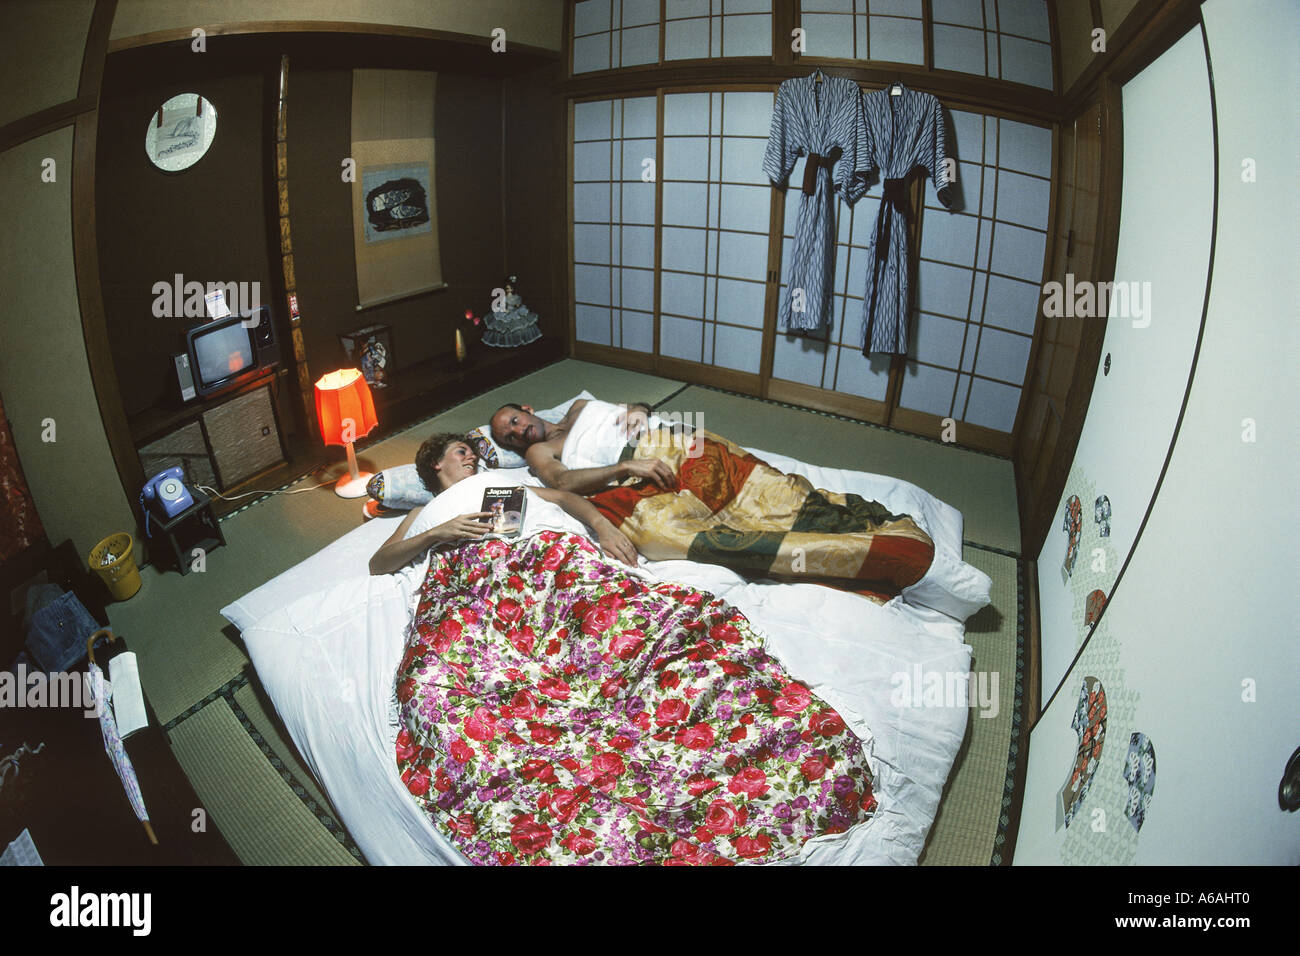 couple sleeping on futon in typical japanese home or